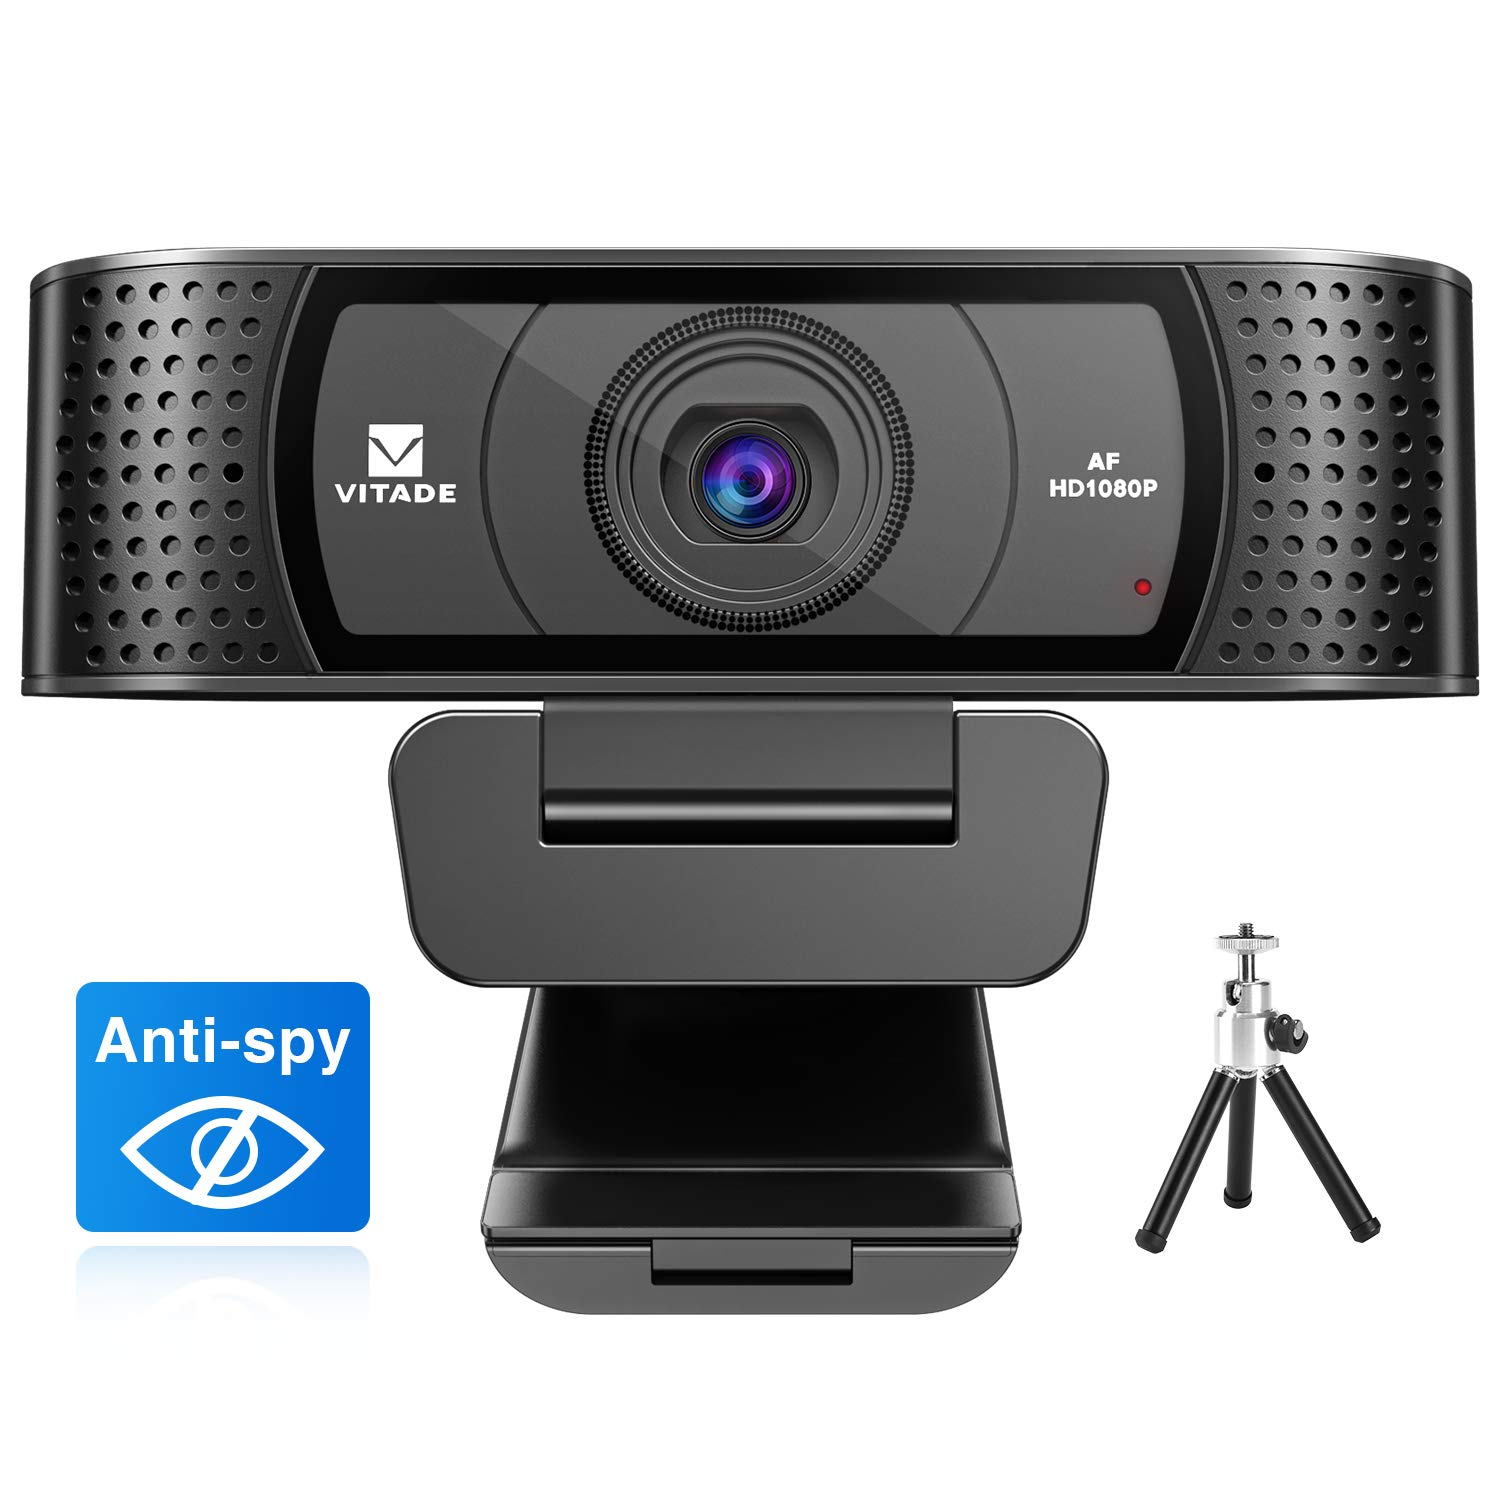 Webcam 1080P with Microphone & Cover, Vitade 928A USB HD Desktop Web Camera Video Cam for Streaming Gaming Conferencing Mac Windows PC Computer Laptop Xbox Skype OBS Twitch YouTube (Tripod Included) by Vitade